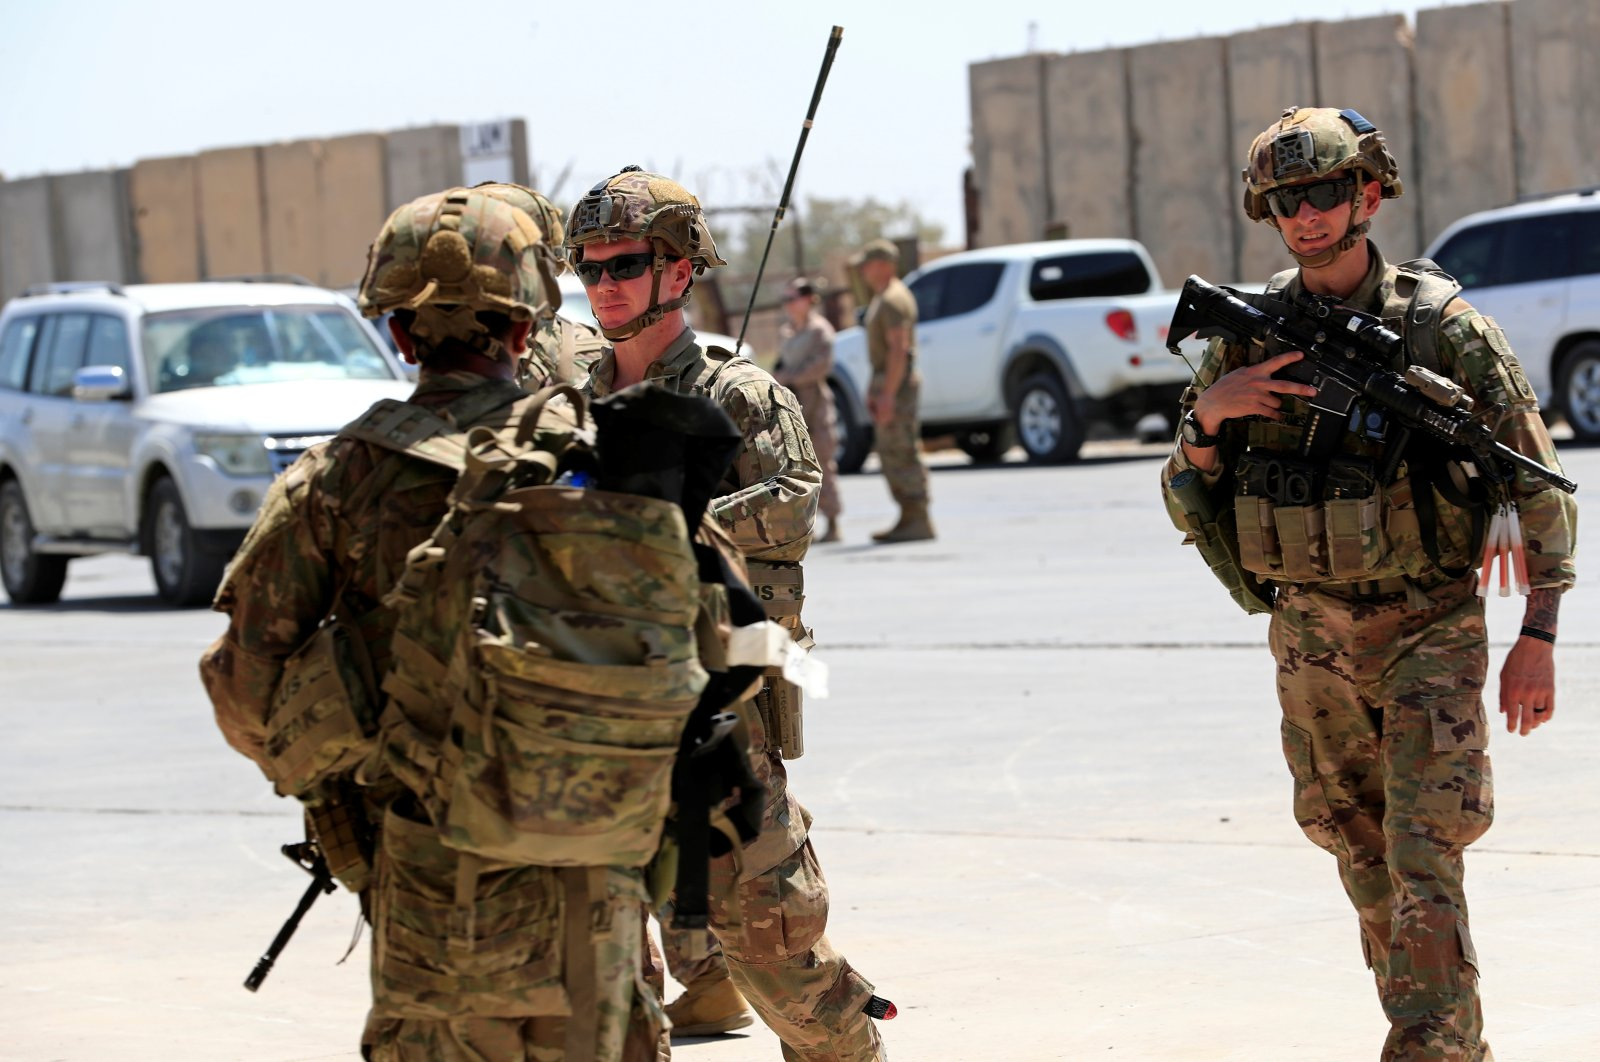 U.S. soldiers are seen during a handover ceremony of Taji military base from U.S.-led coalition troops to Iraqi security forces, in the base north of Baghdad, Iraq, Aug. 23, 2020. (Reuters Photo)